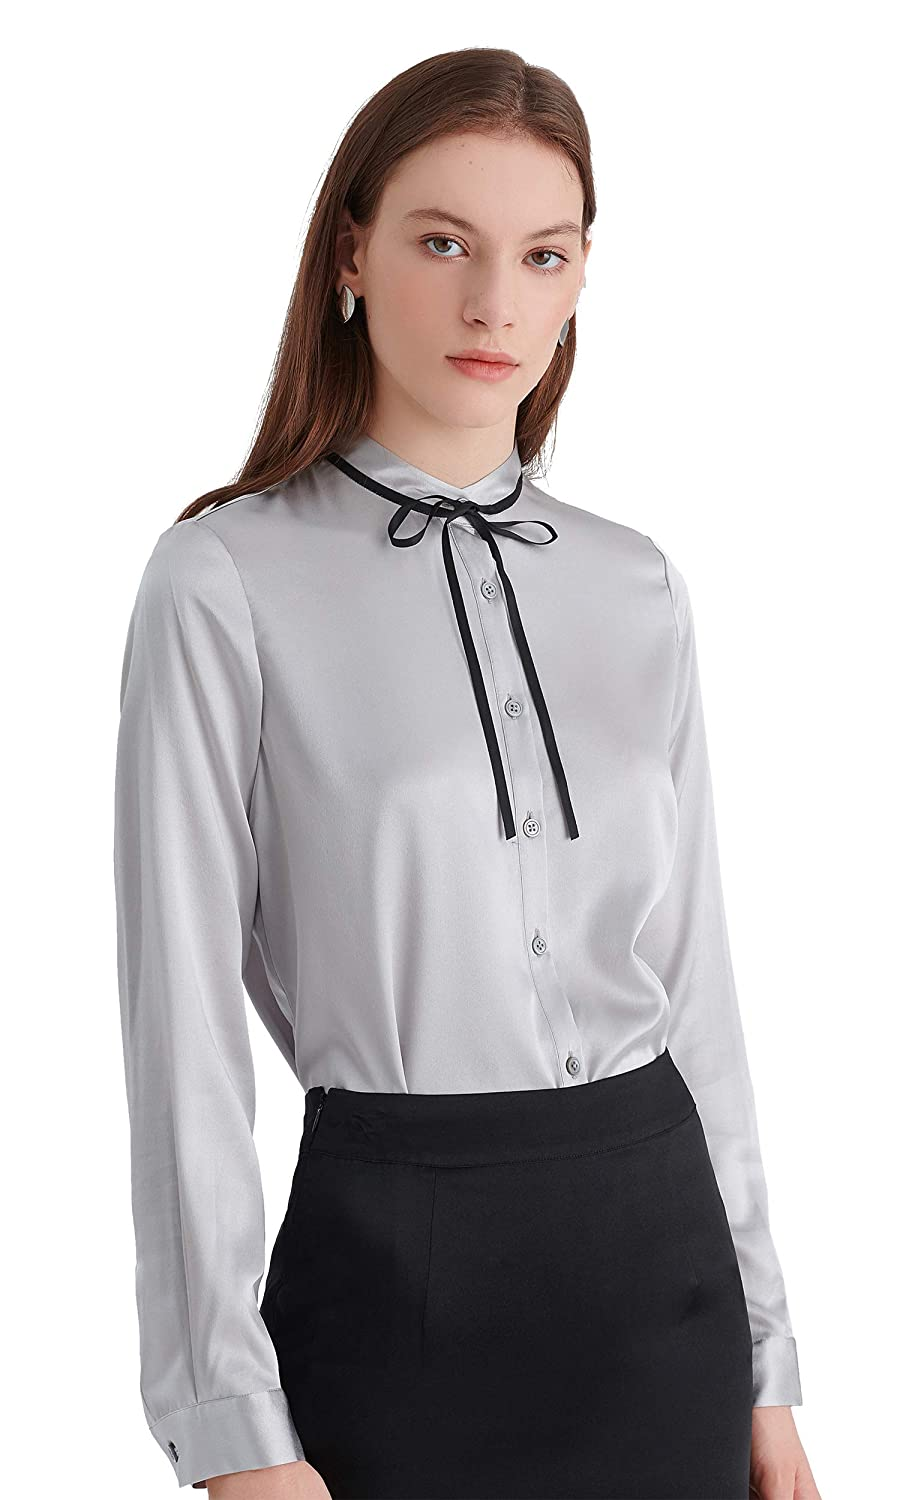 e789674333eaf LILYSILK Ladies Sleek Tie Neck Silk Blouse Long Sleeve Women s Top Shirt  Pure 19 Momme Silk  Amazon.co.uk  Clothing